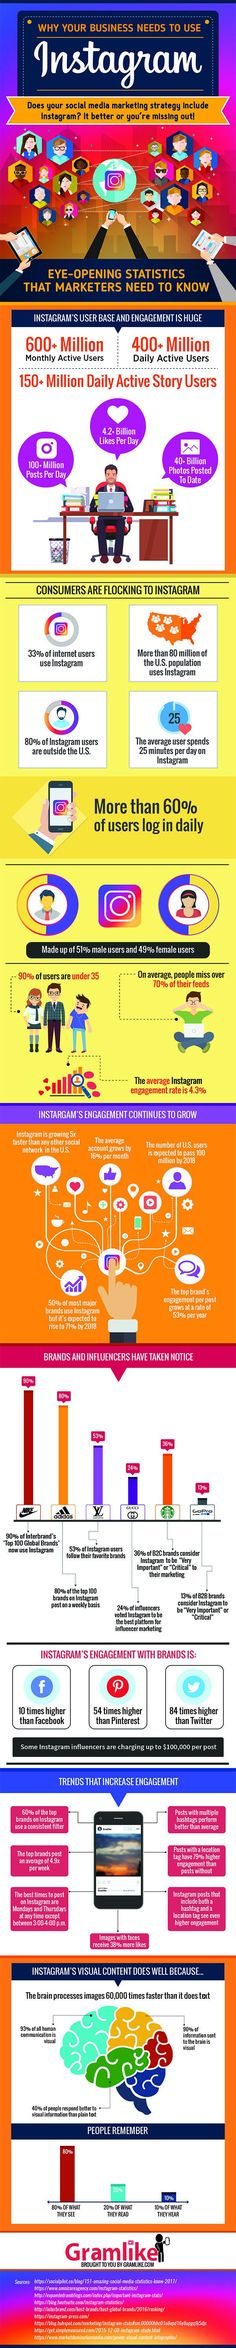 Why Businesses Should Use Instagram for Marketing | Social Media Infographic